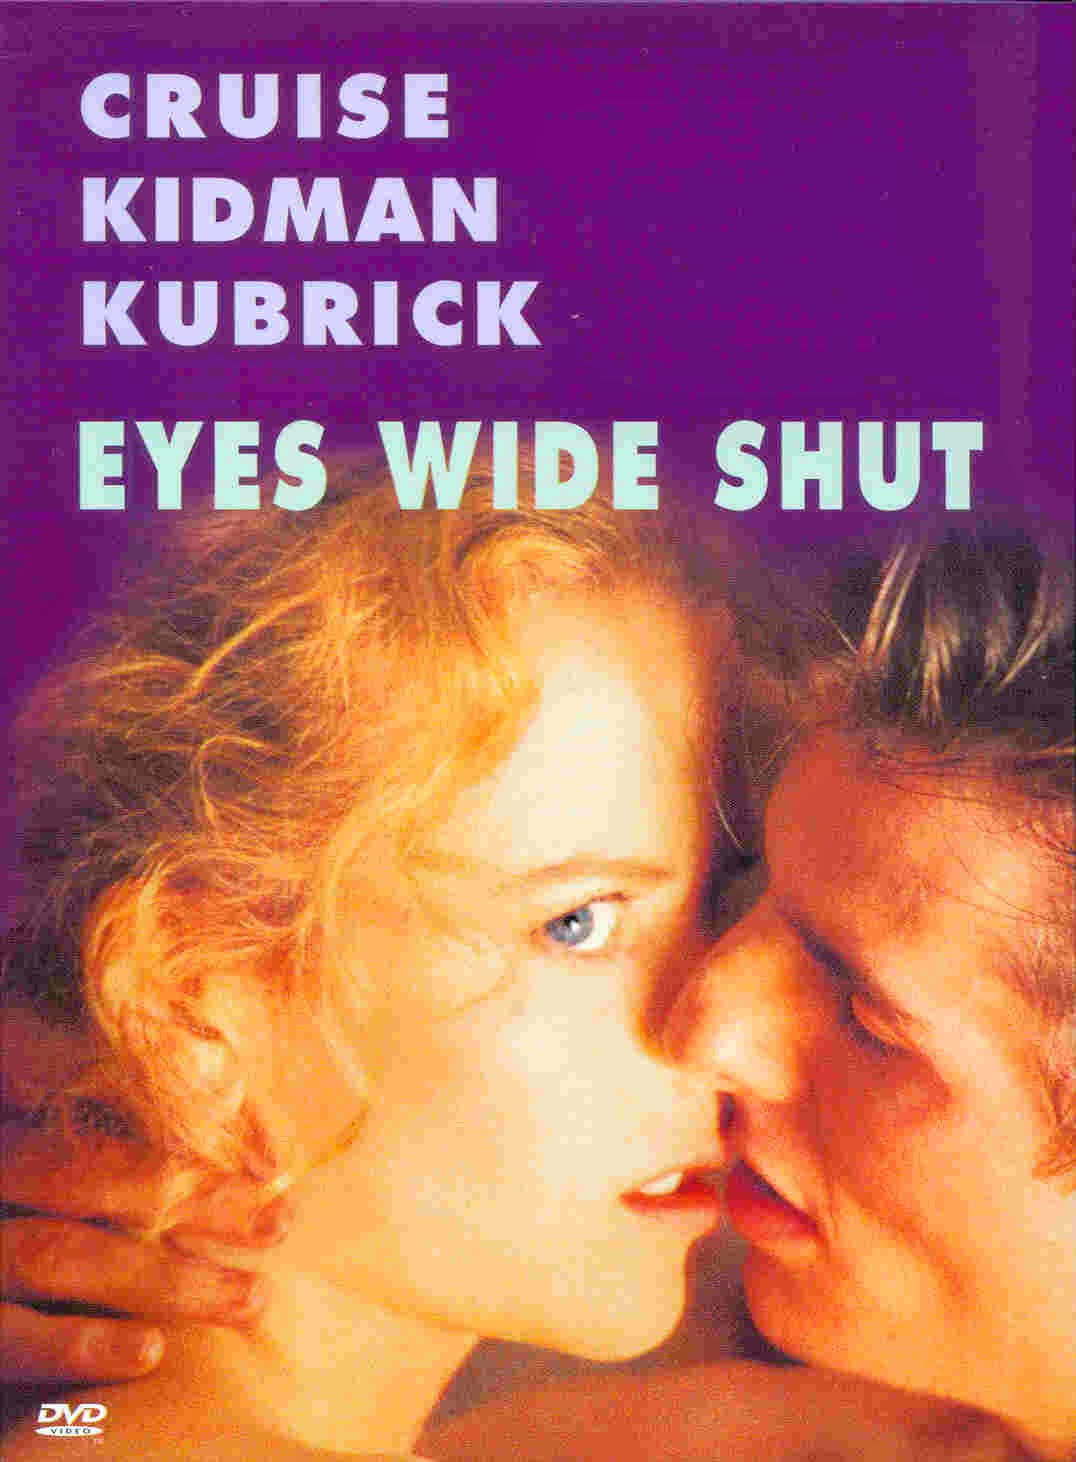 an analysis of the movie eyes wide shut I happened upon this article by chance when i picked up a spring 2000 issue of  film quarterly kreider's analysis of the kubrick film eyes wide shut is quite.